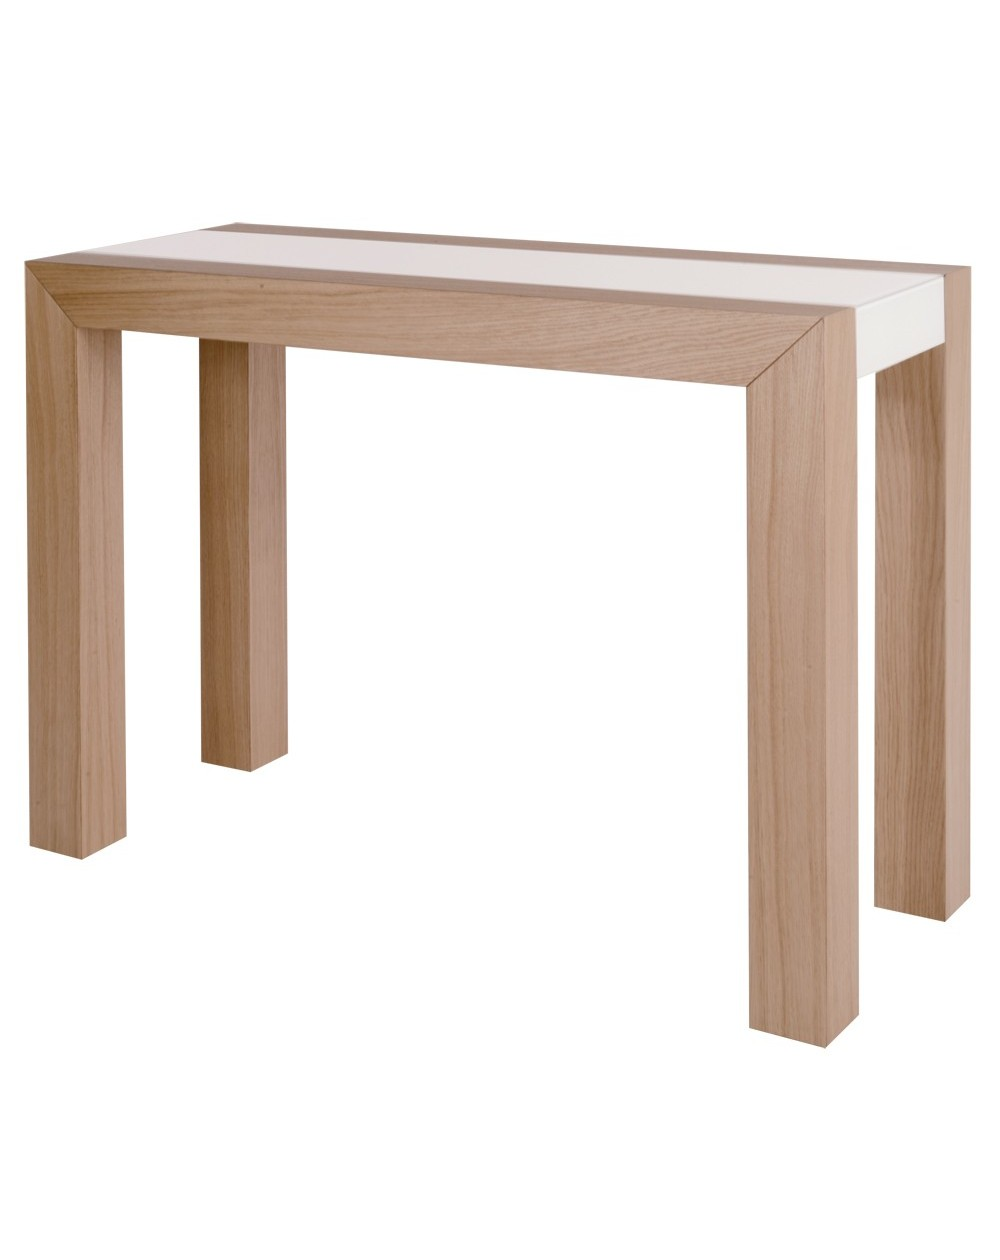 Table console extensible mirror en laque ou chene avec - Table console extensible blanc laque design ...